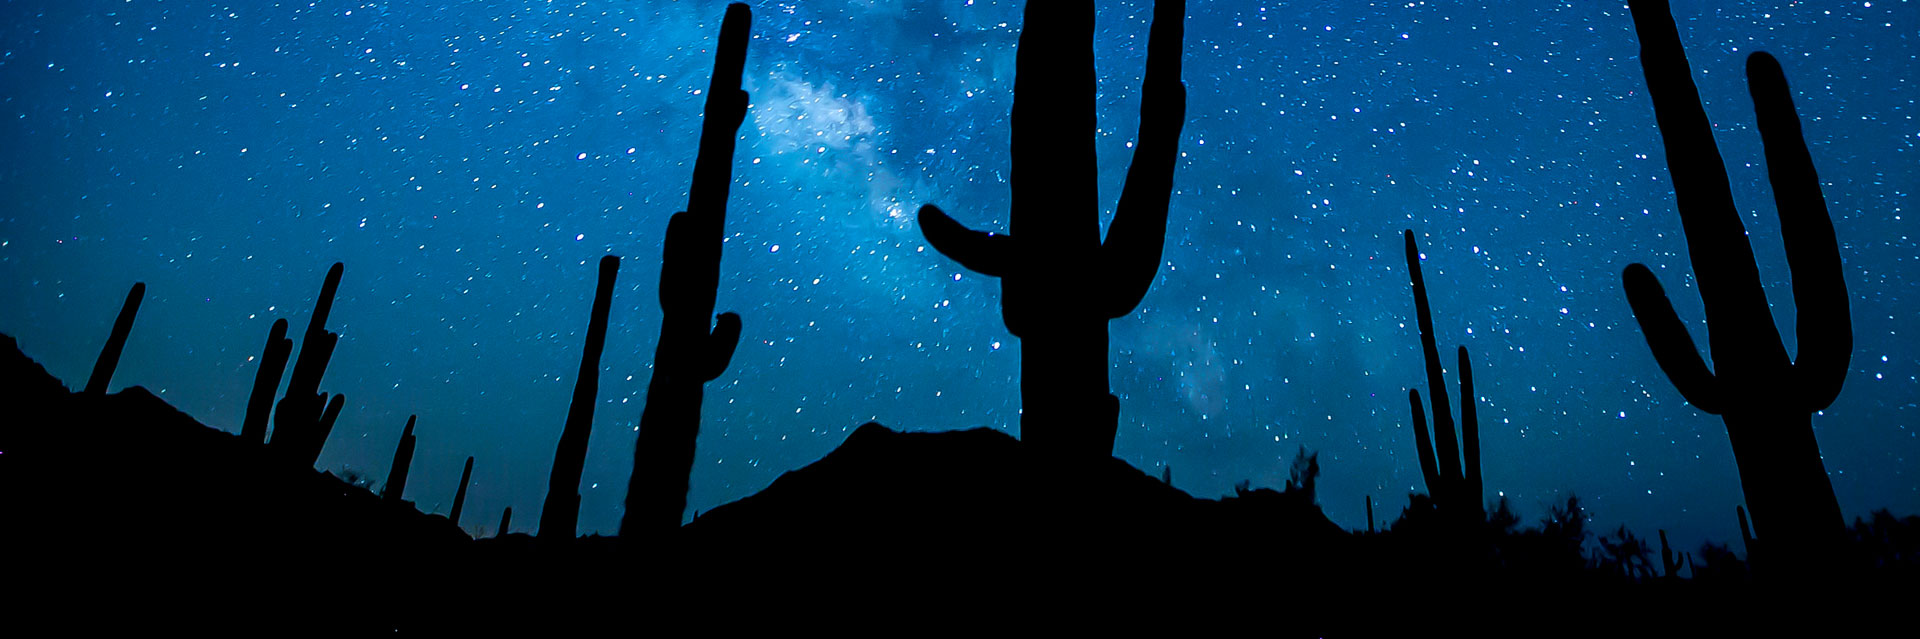 Arizona night-sky